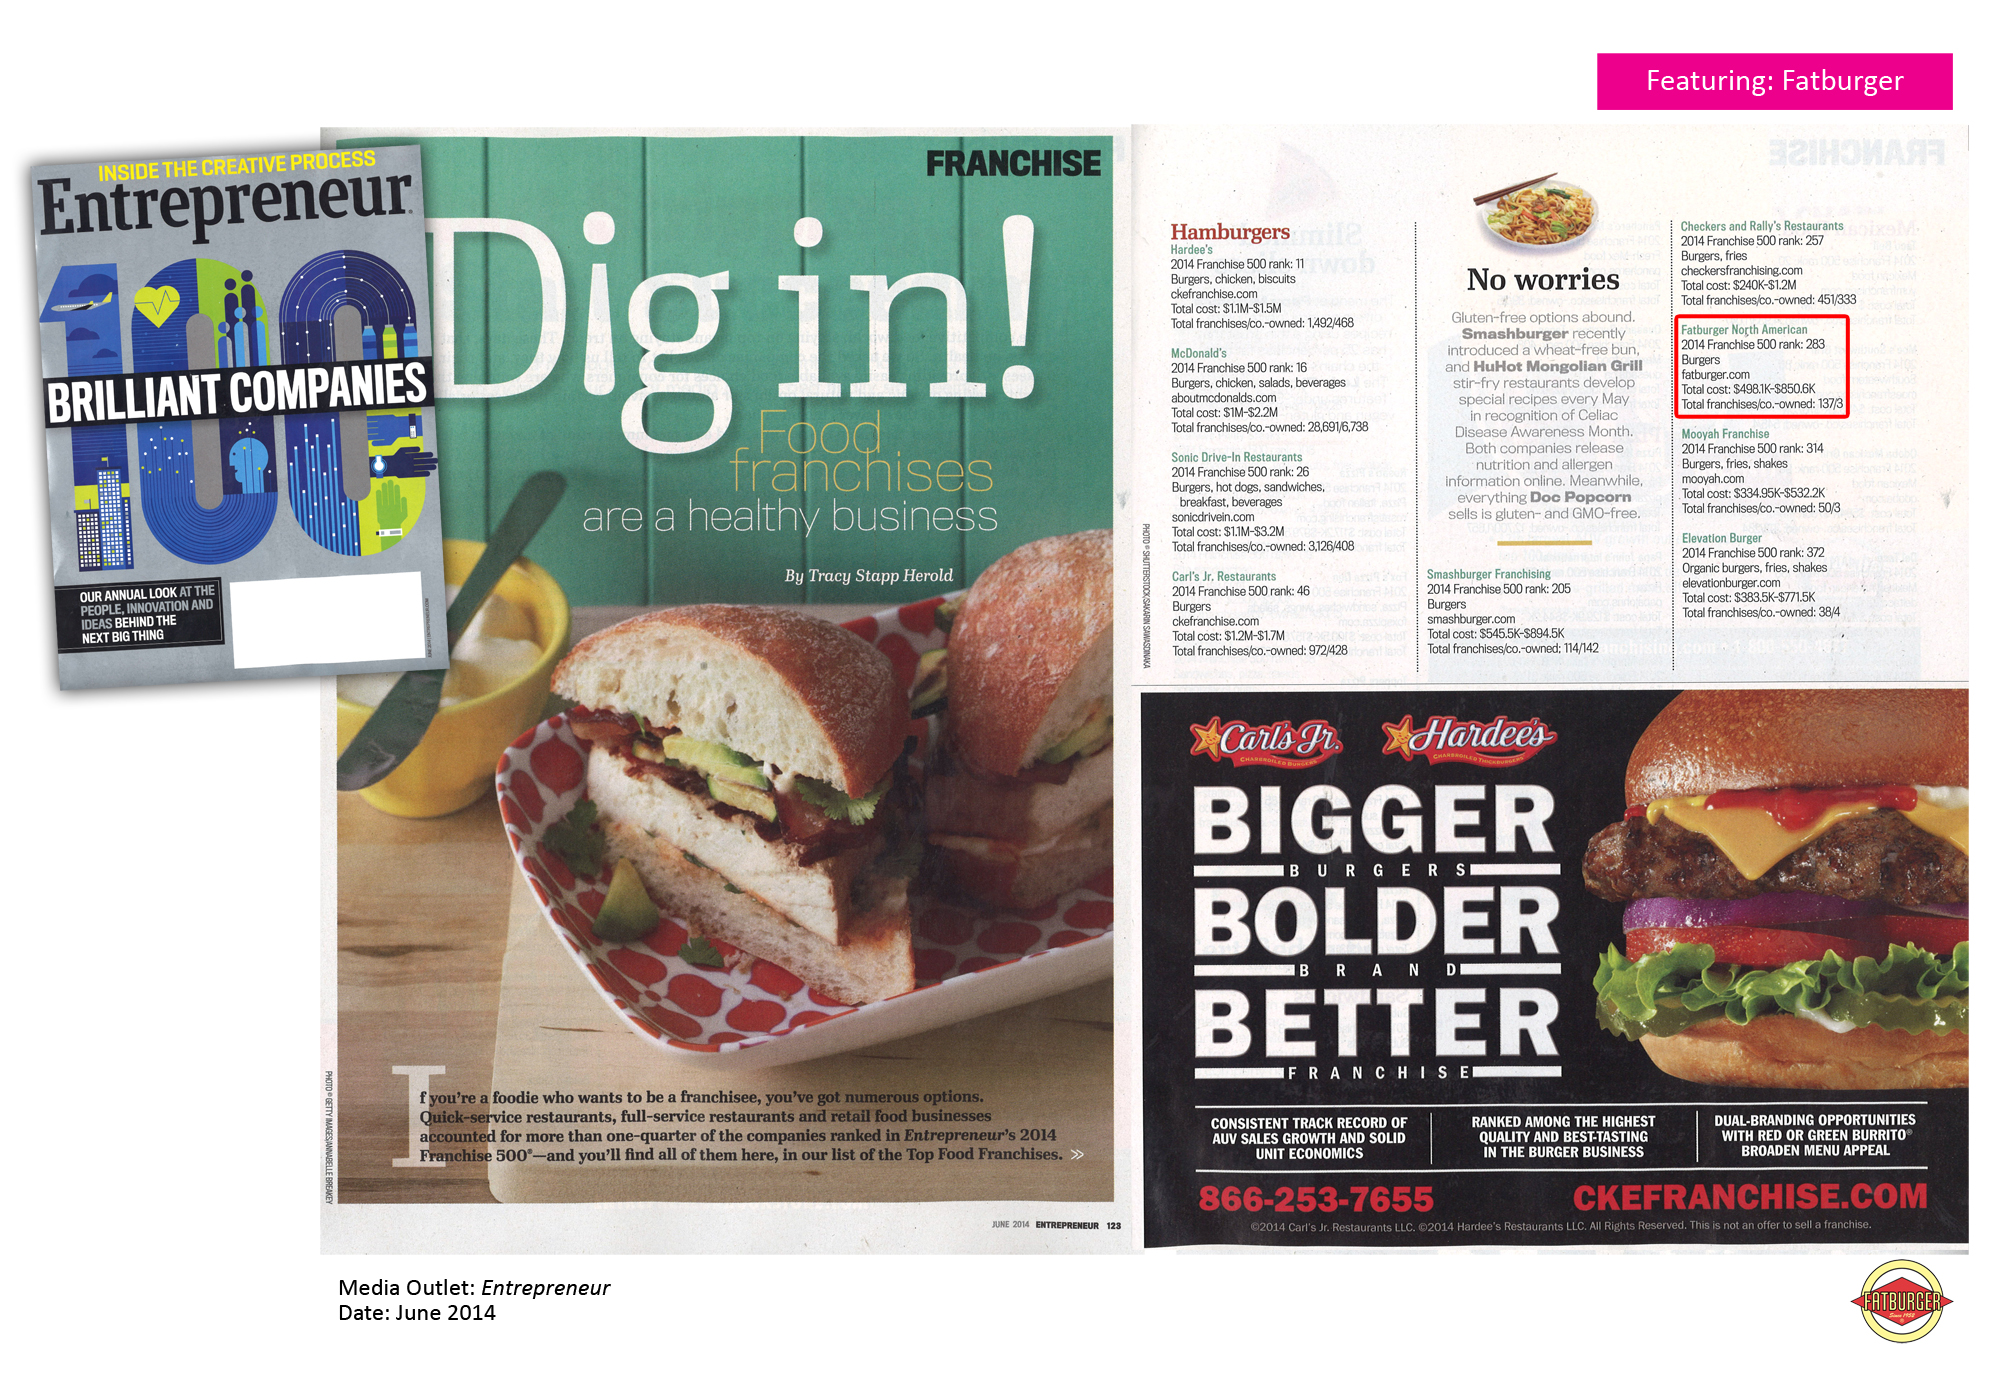 Fatburger Lists as a Top Food Franchise in Entrepreneur Magazine